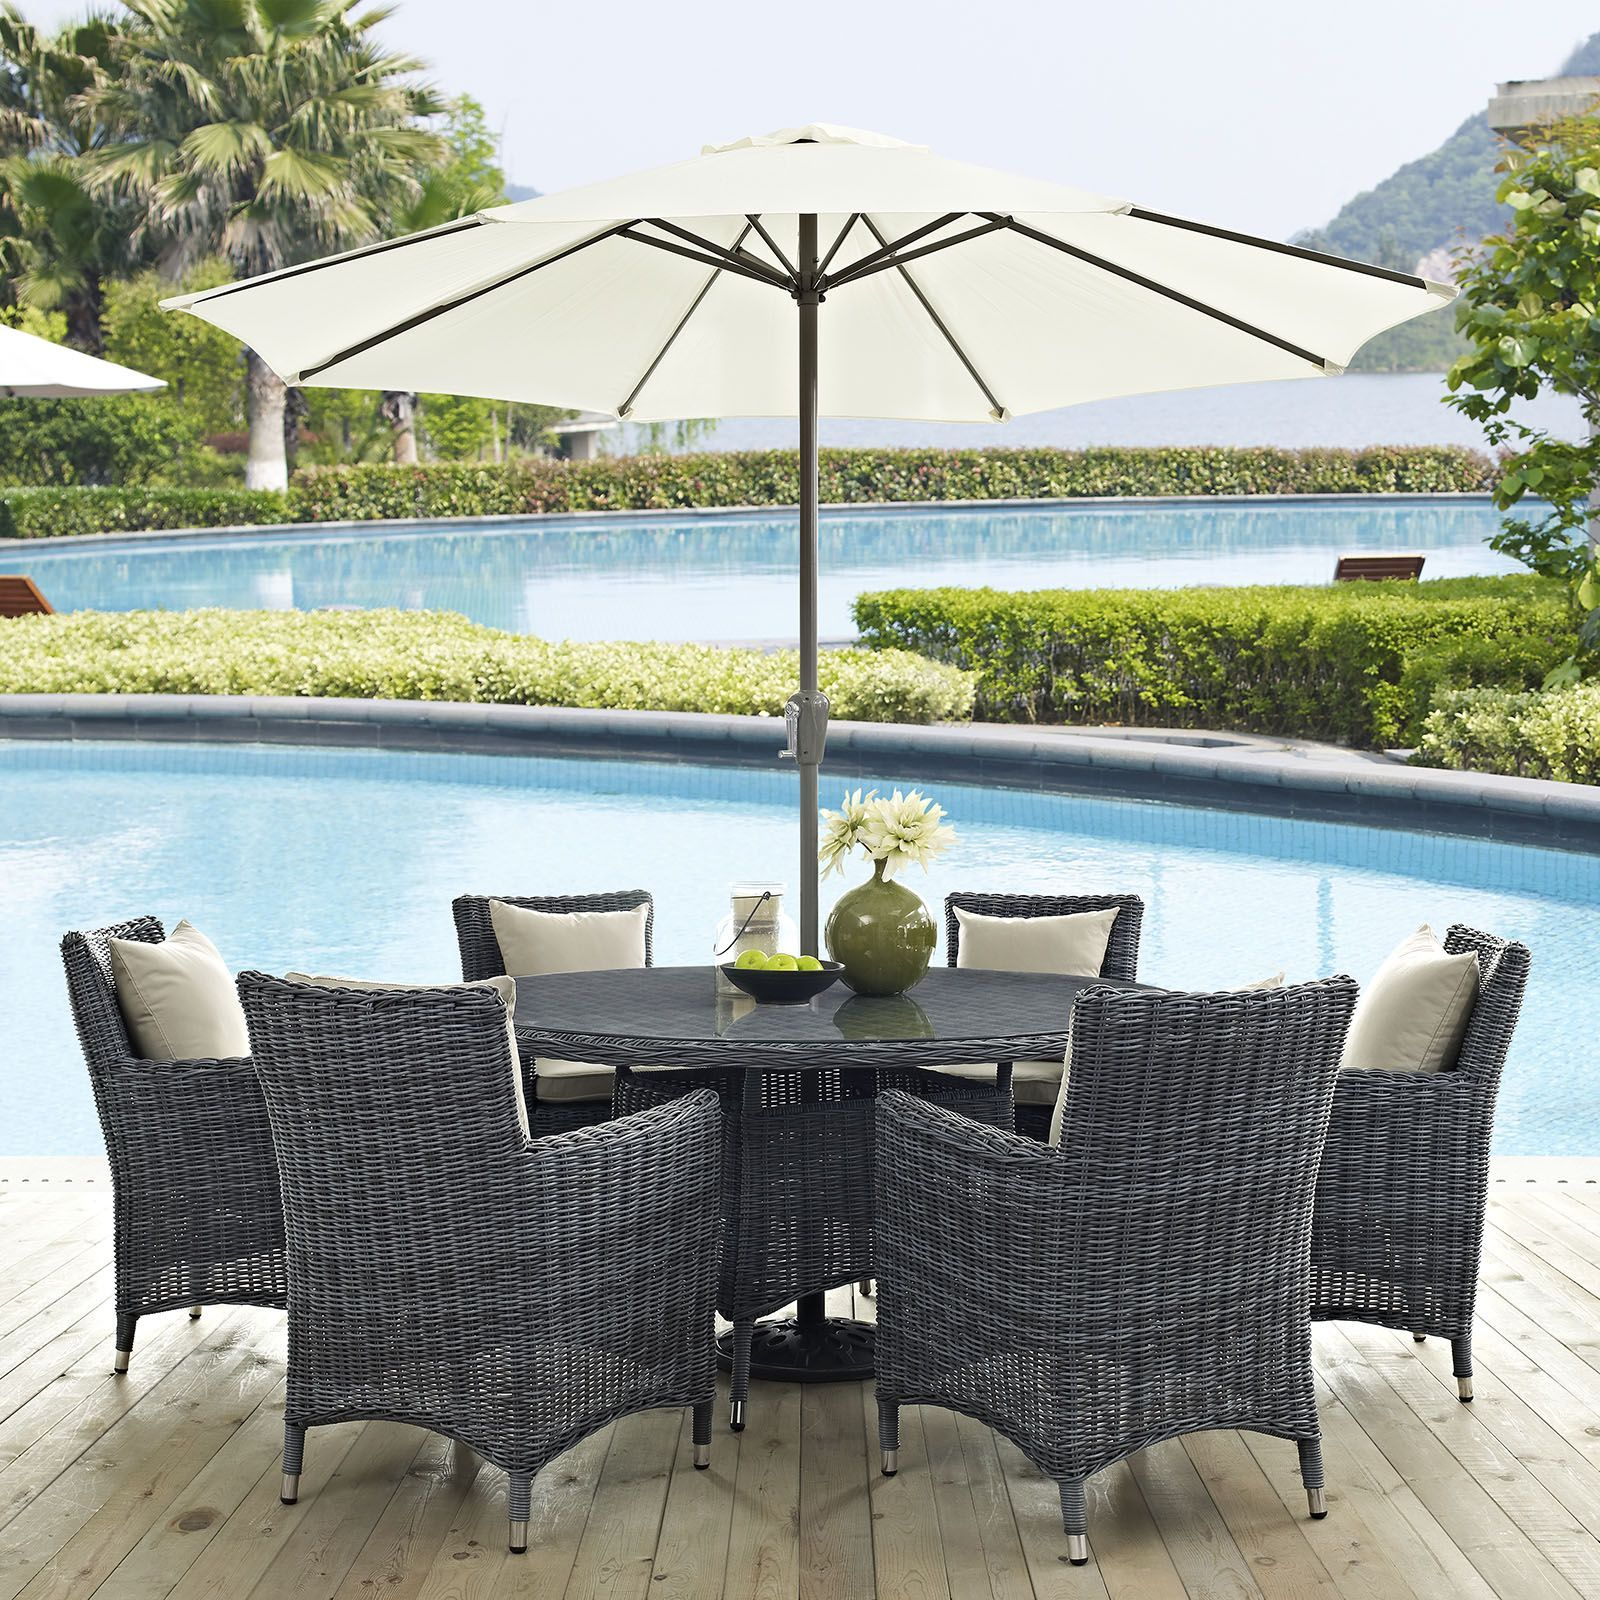 Summon 8 Piece Outdoor Patio Sunbrella R Dining Set